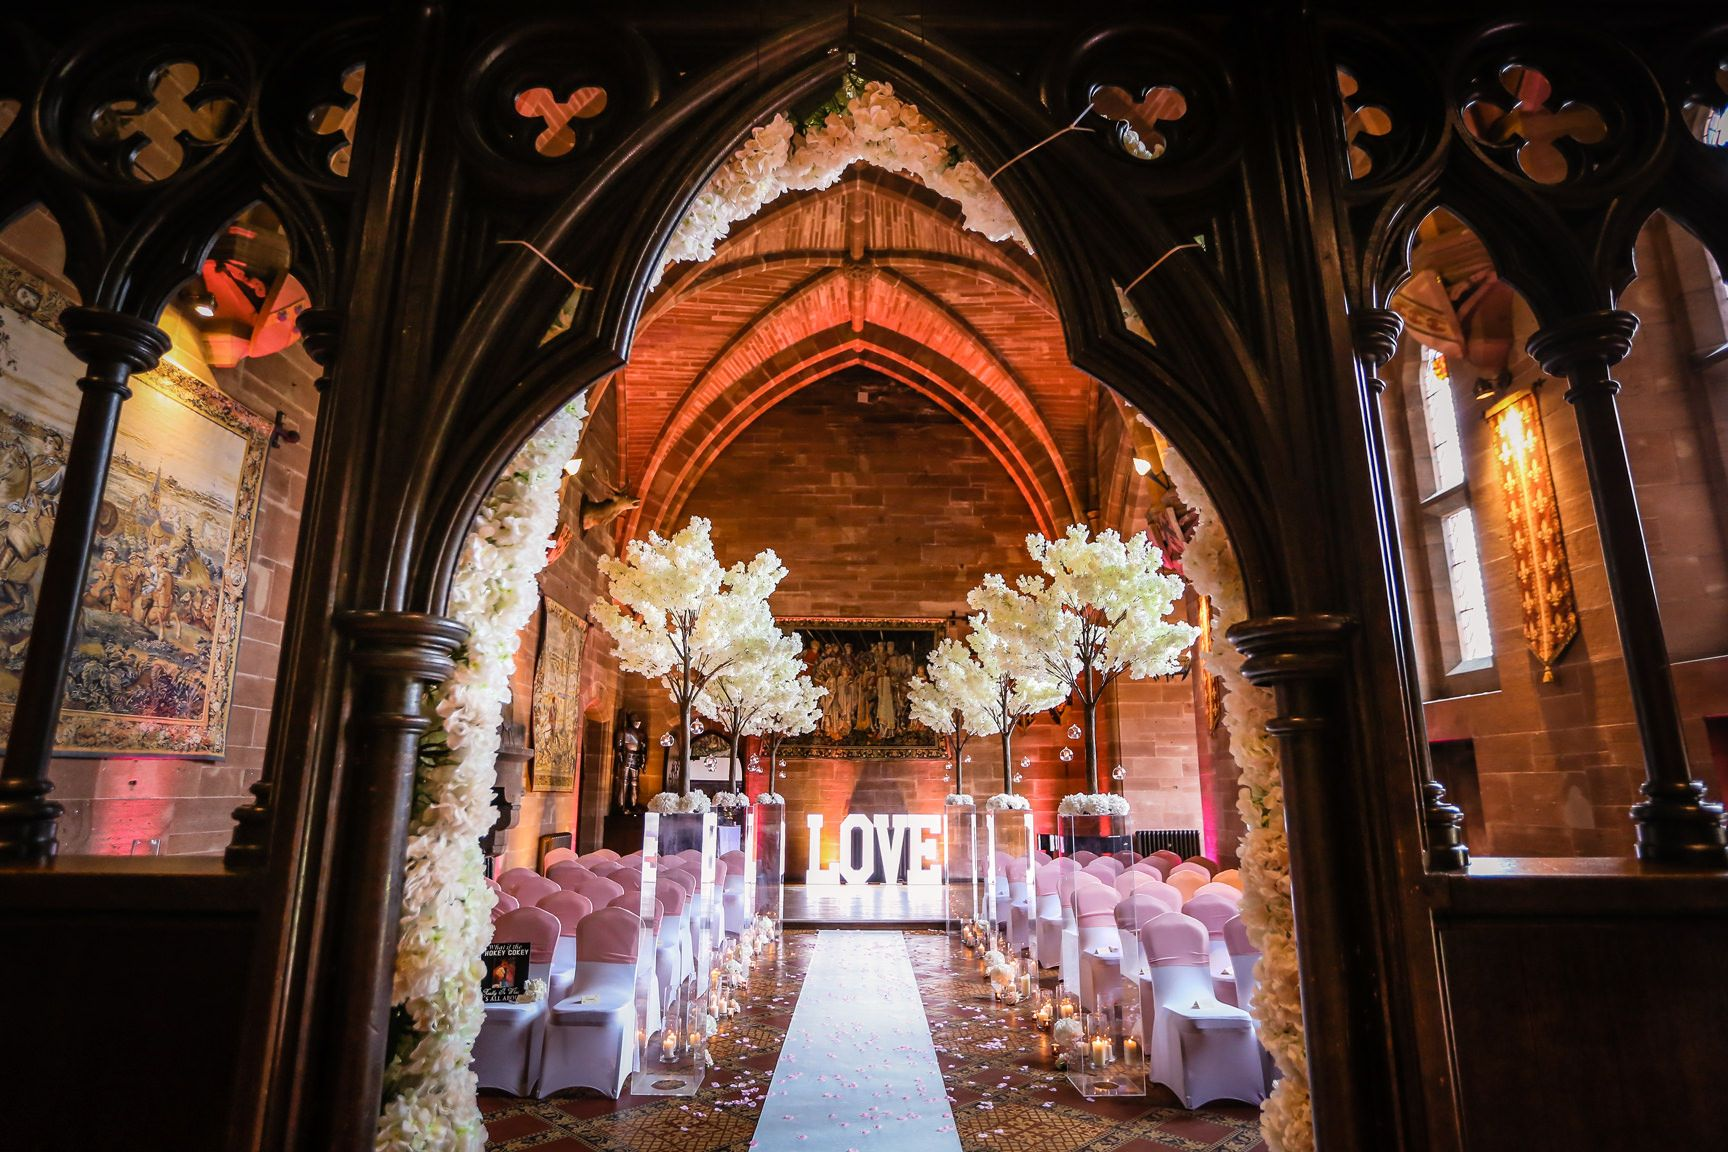 Wedding ceremony interior flower decorations at Peckforton Castle in the great hall